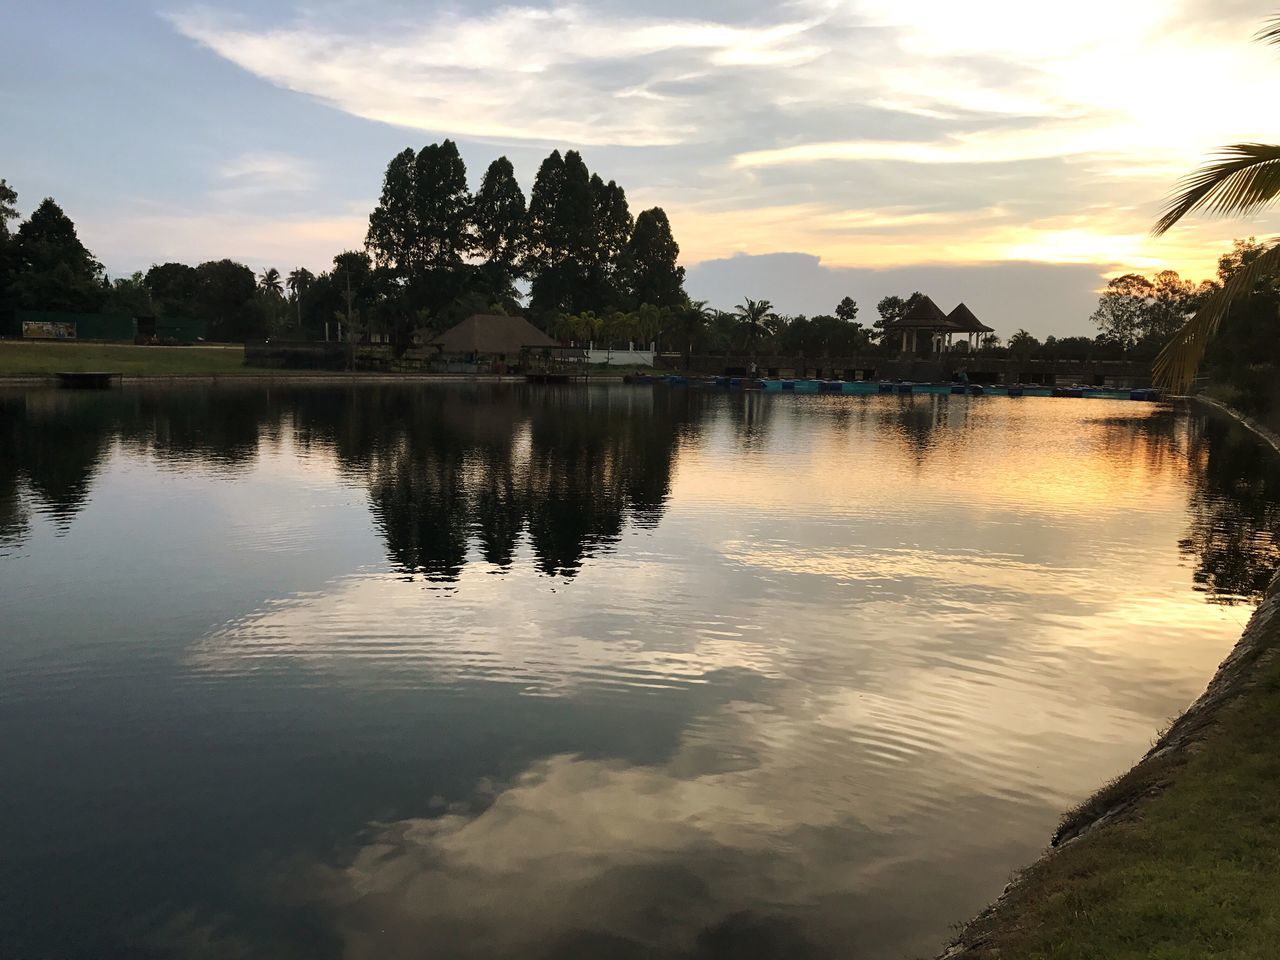 reflection, sunset, water, scenics, nature, sky, cloud - sky, tranquil scene, lake, tree, tranquility, beauty in nature, outdoors, no people, architecture, day